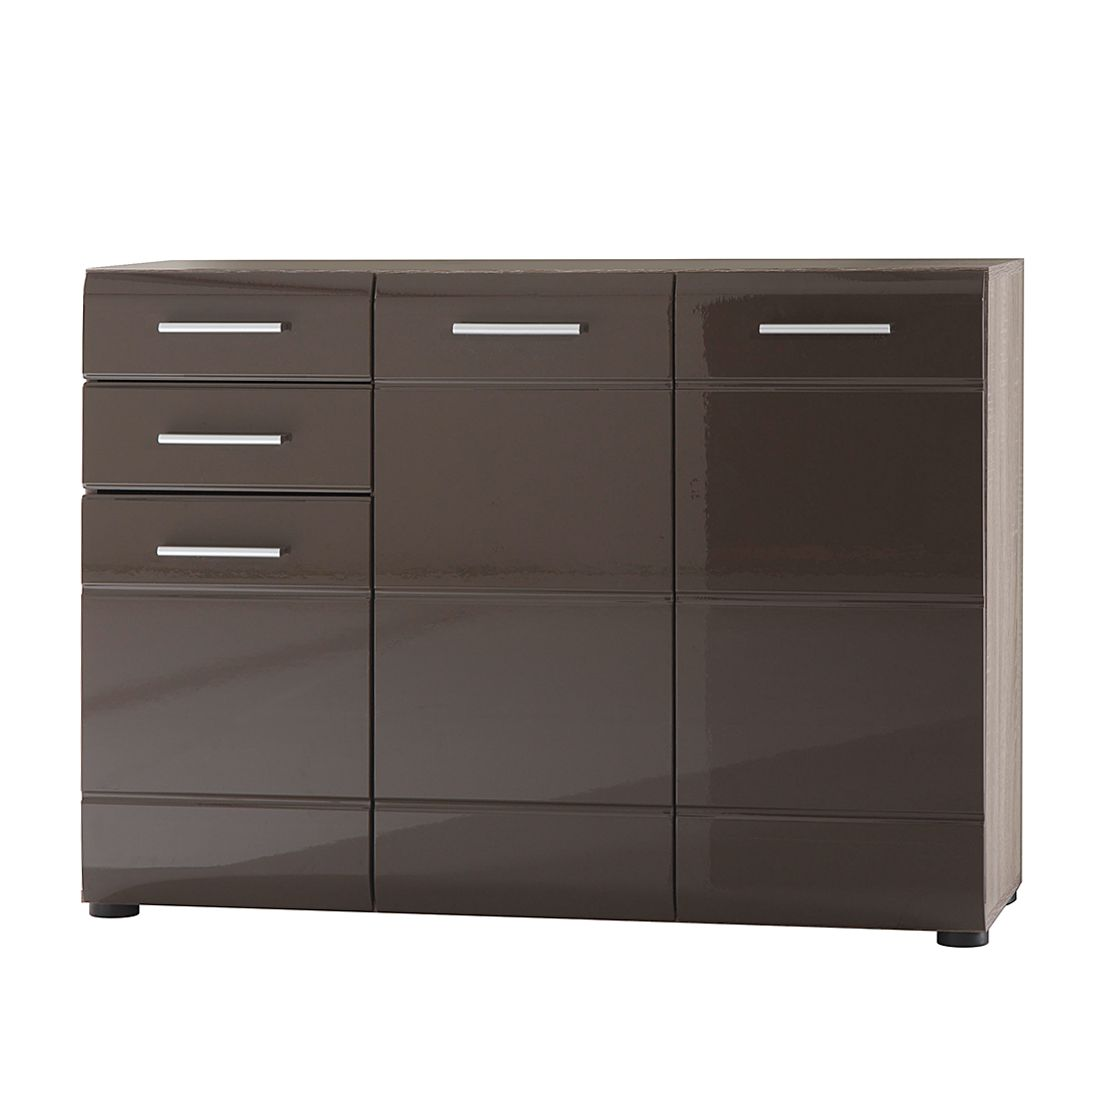 sideboard storm ii eiche s gerau dunkel dekor blackbrown hochglanz. Black Bedroom Furniture Sets. Home Design Ideas